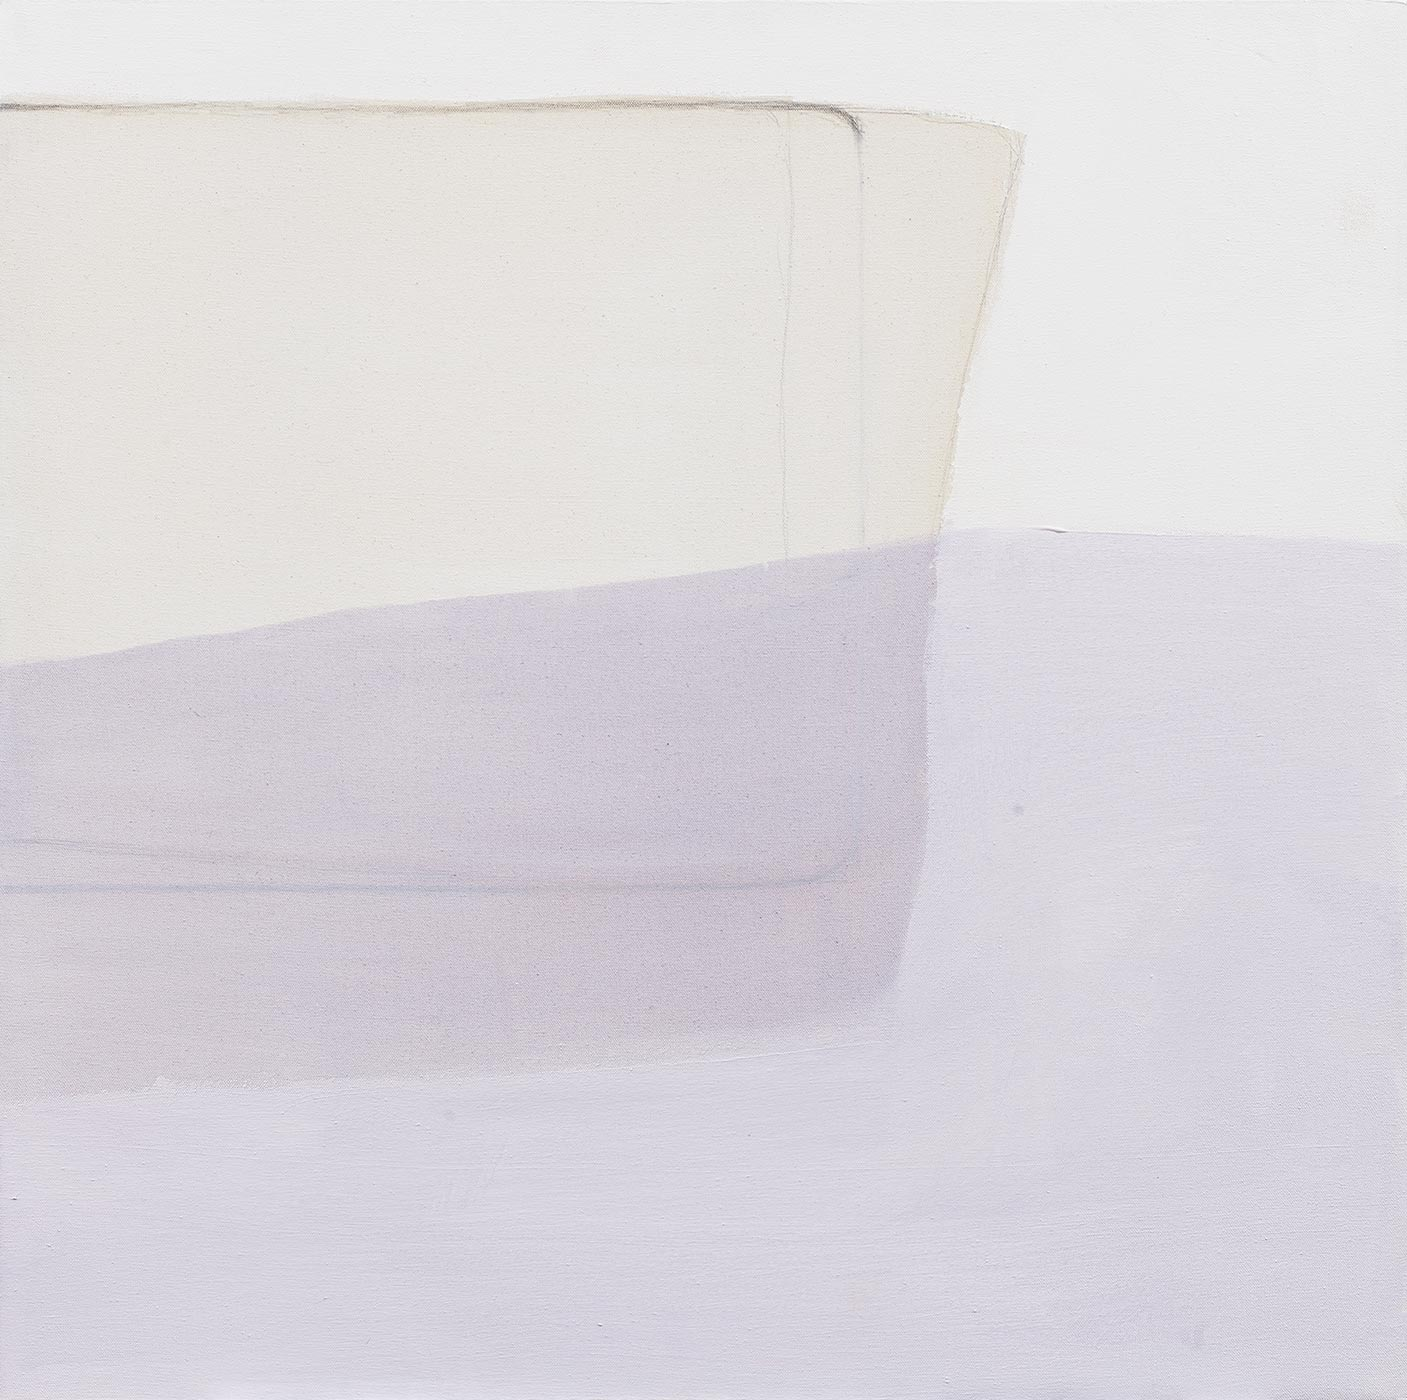 Sharon Kuo  - Variation VI (dipped in grape-flavored soda)